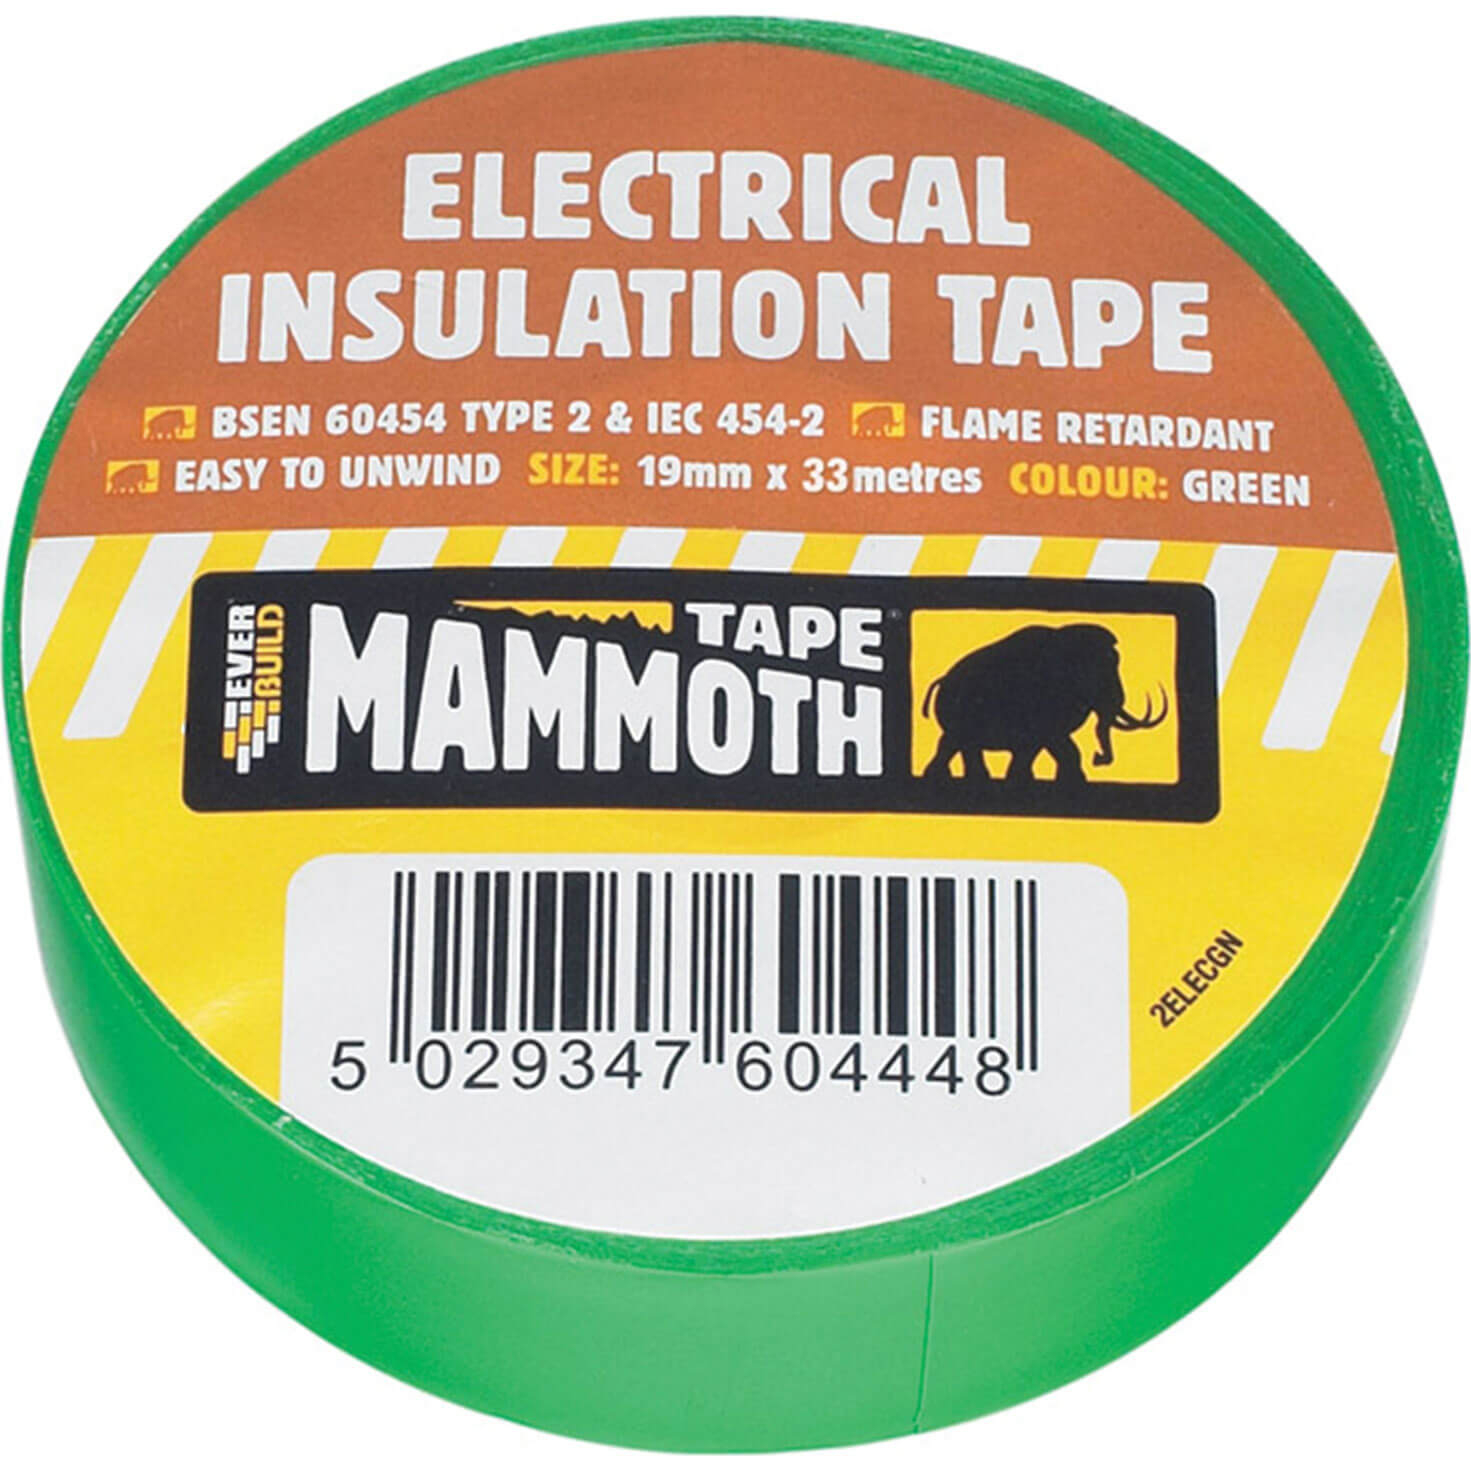 Image of Everbuild Electrical Insulation Tape Green 19mm 33m